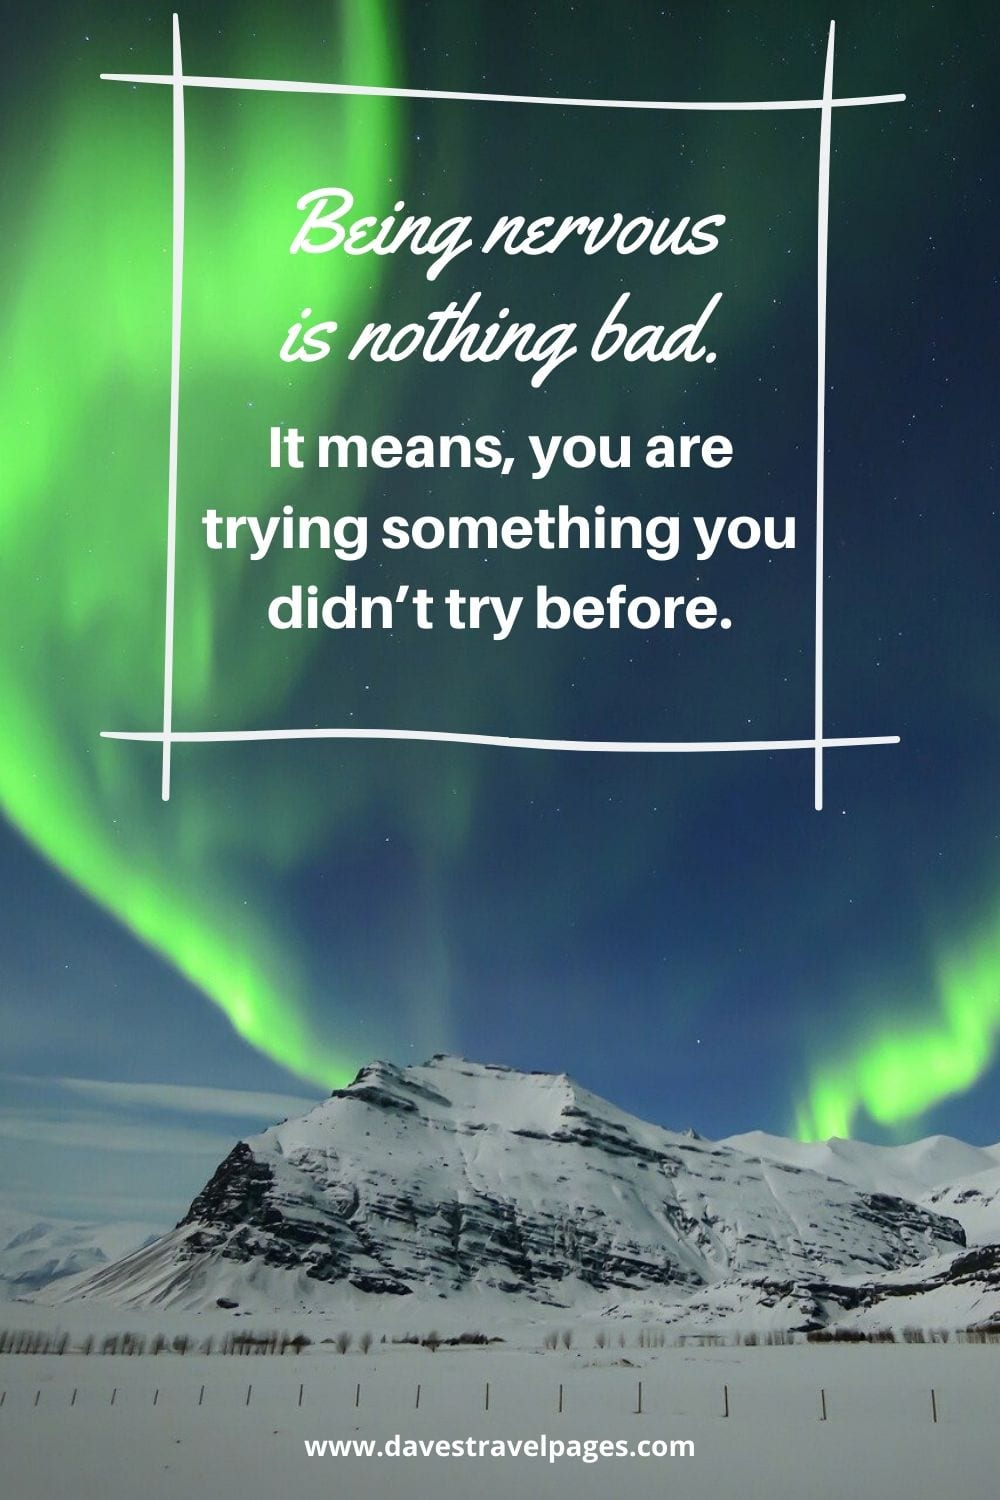 Inspirational quote about adventure and life: Being nervous is nothing bad. It means, you are trying something you didn't try before.